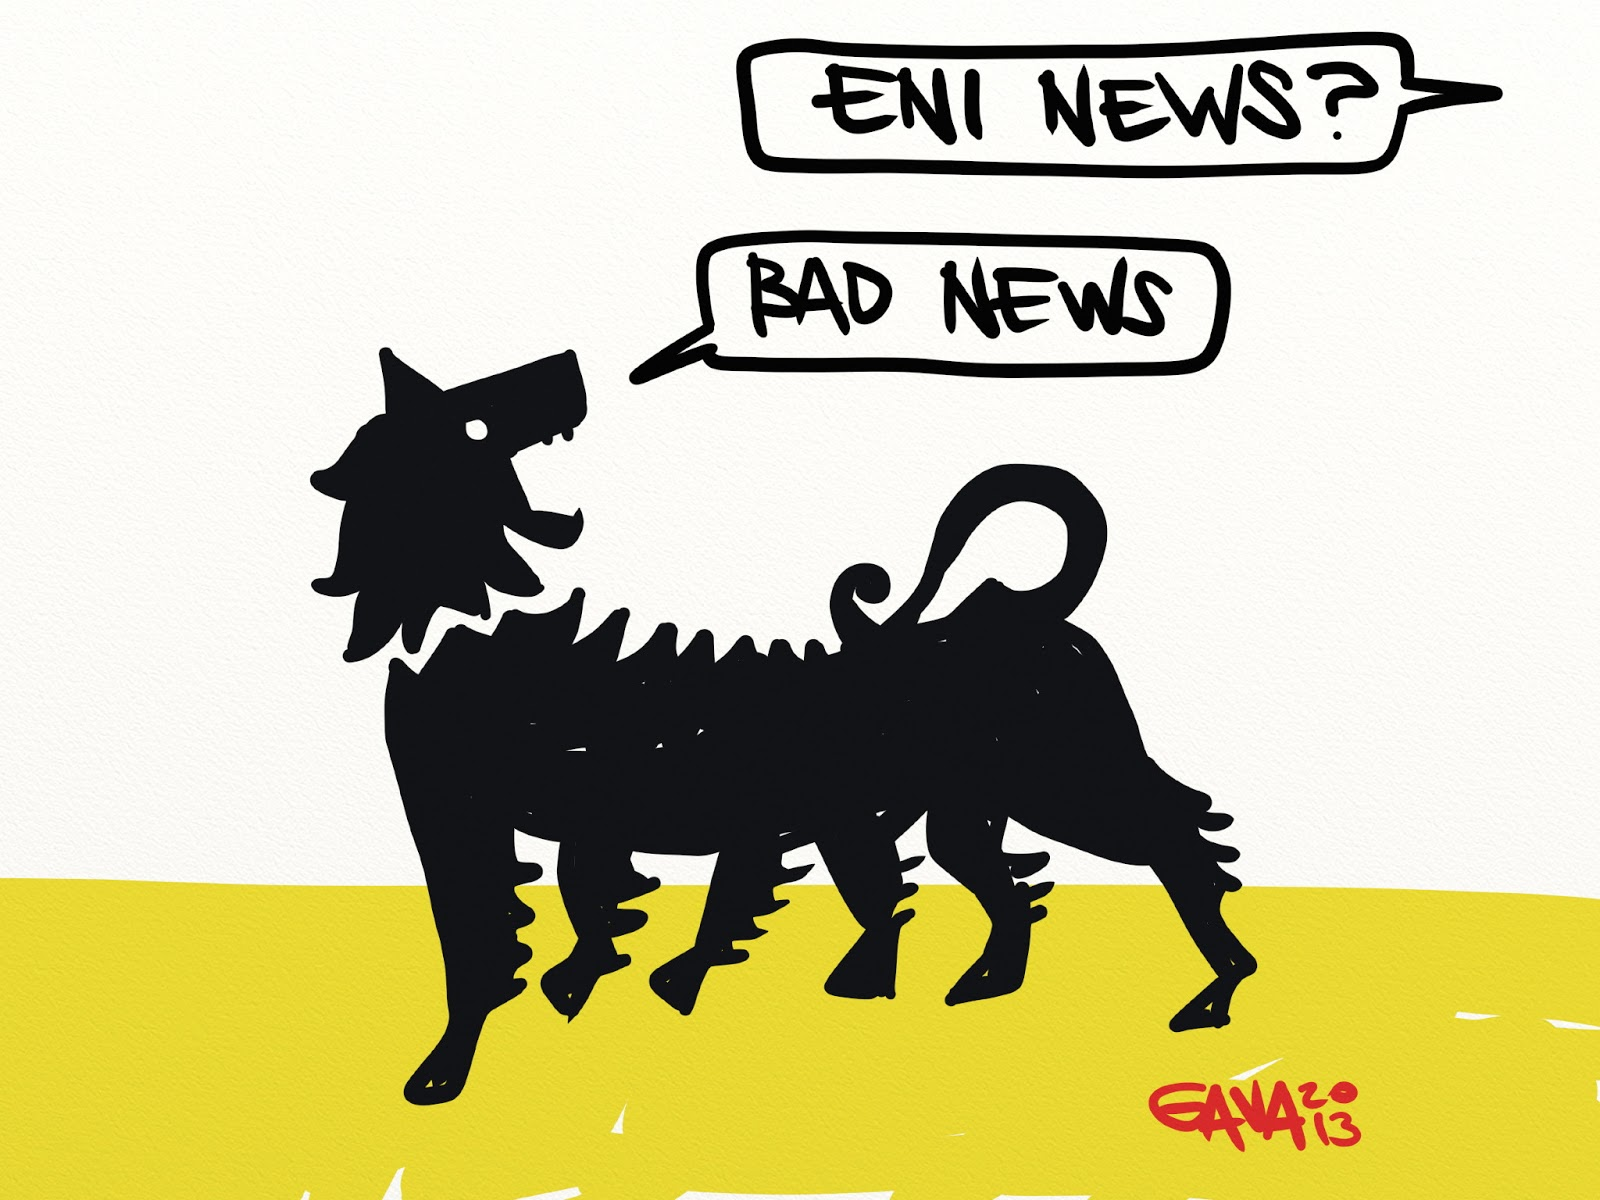 eni, bad news